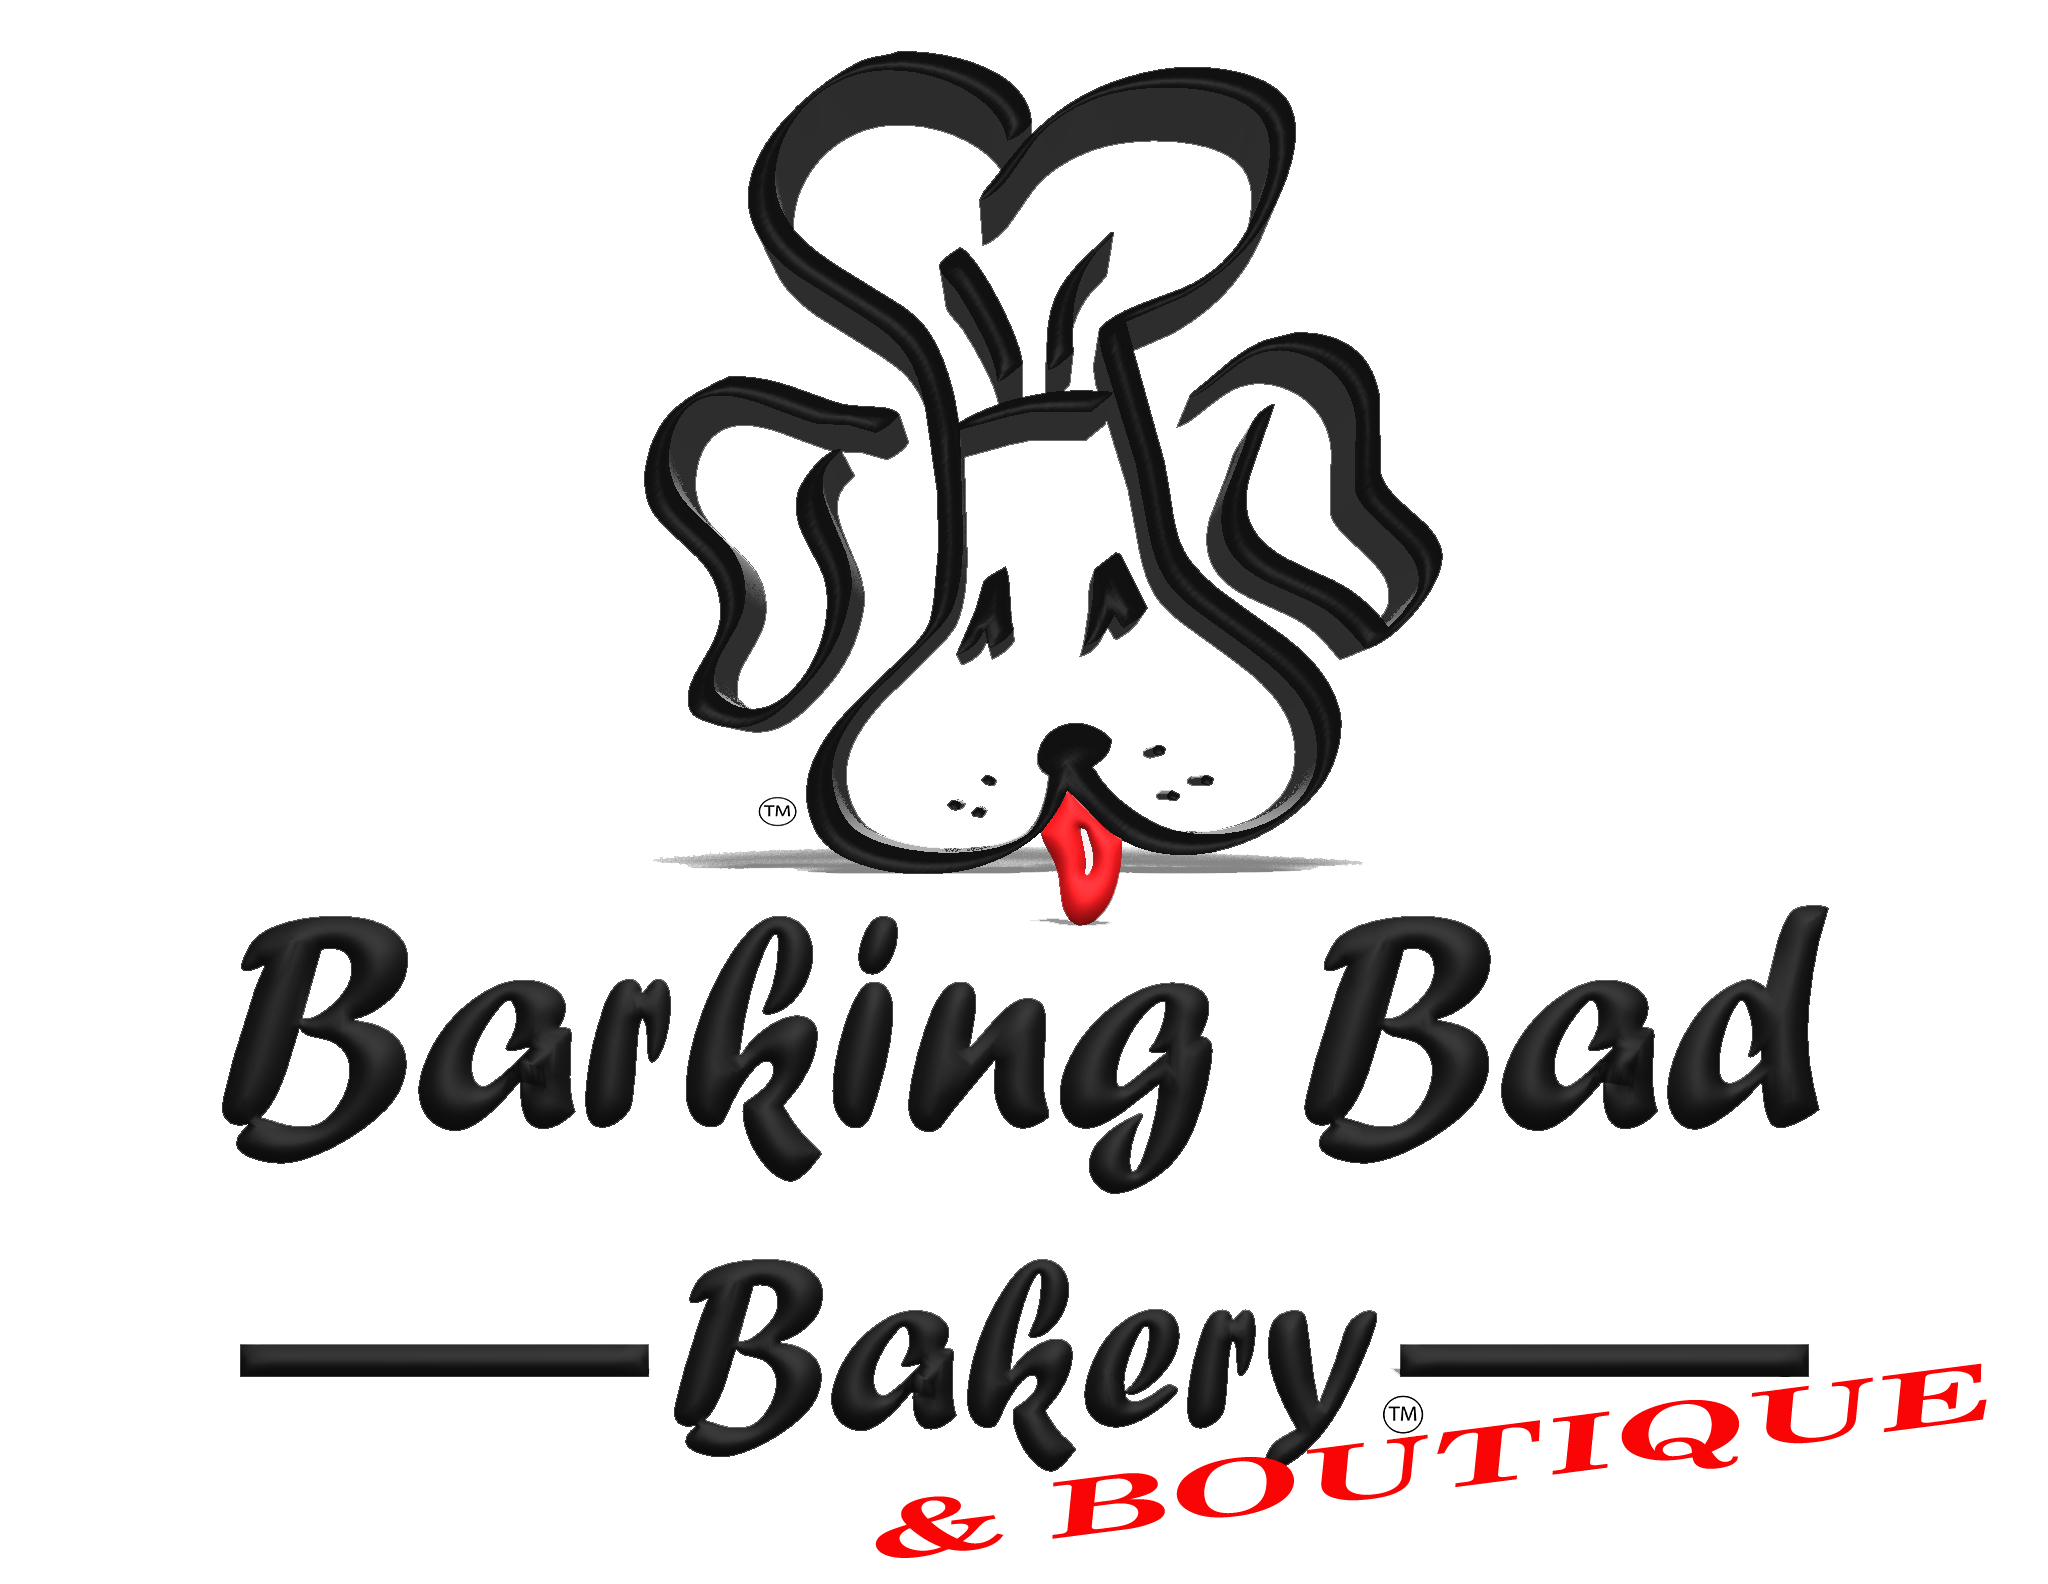 bbb-bakery-and-boutique.jpg